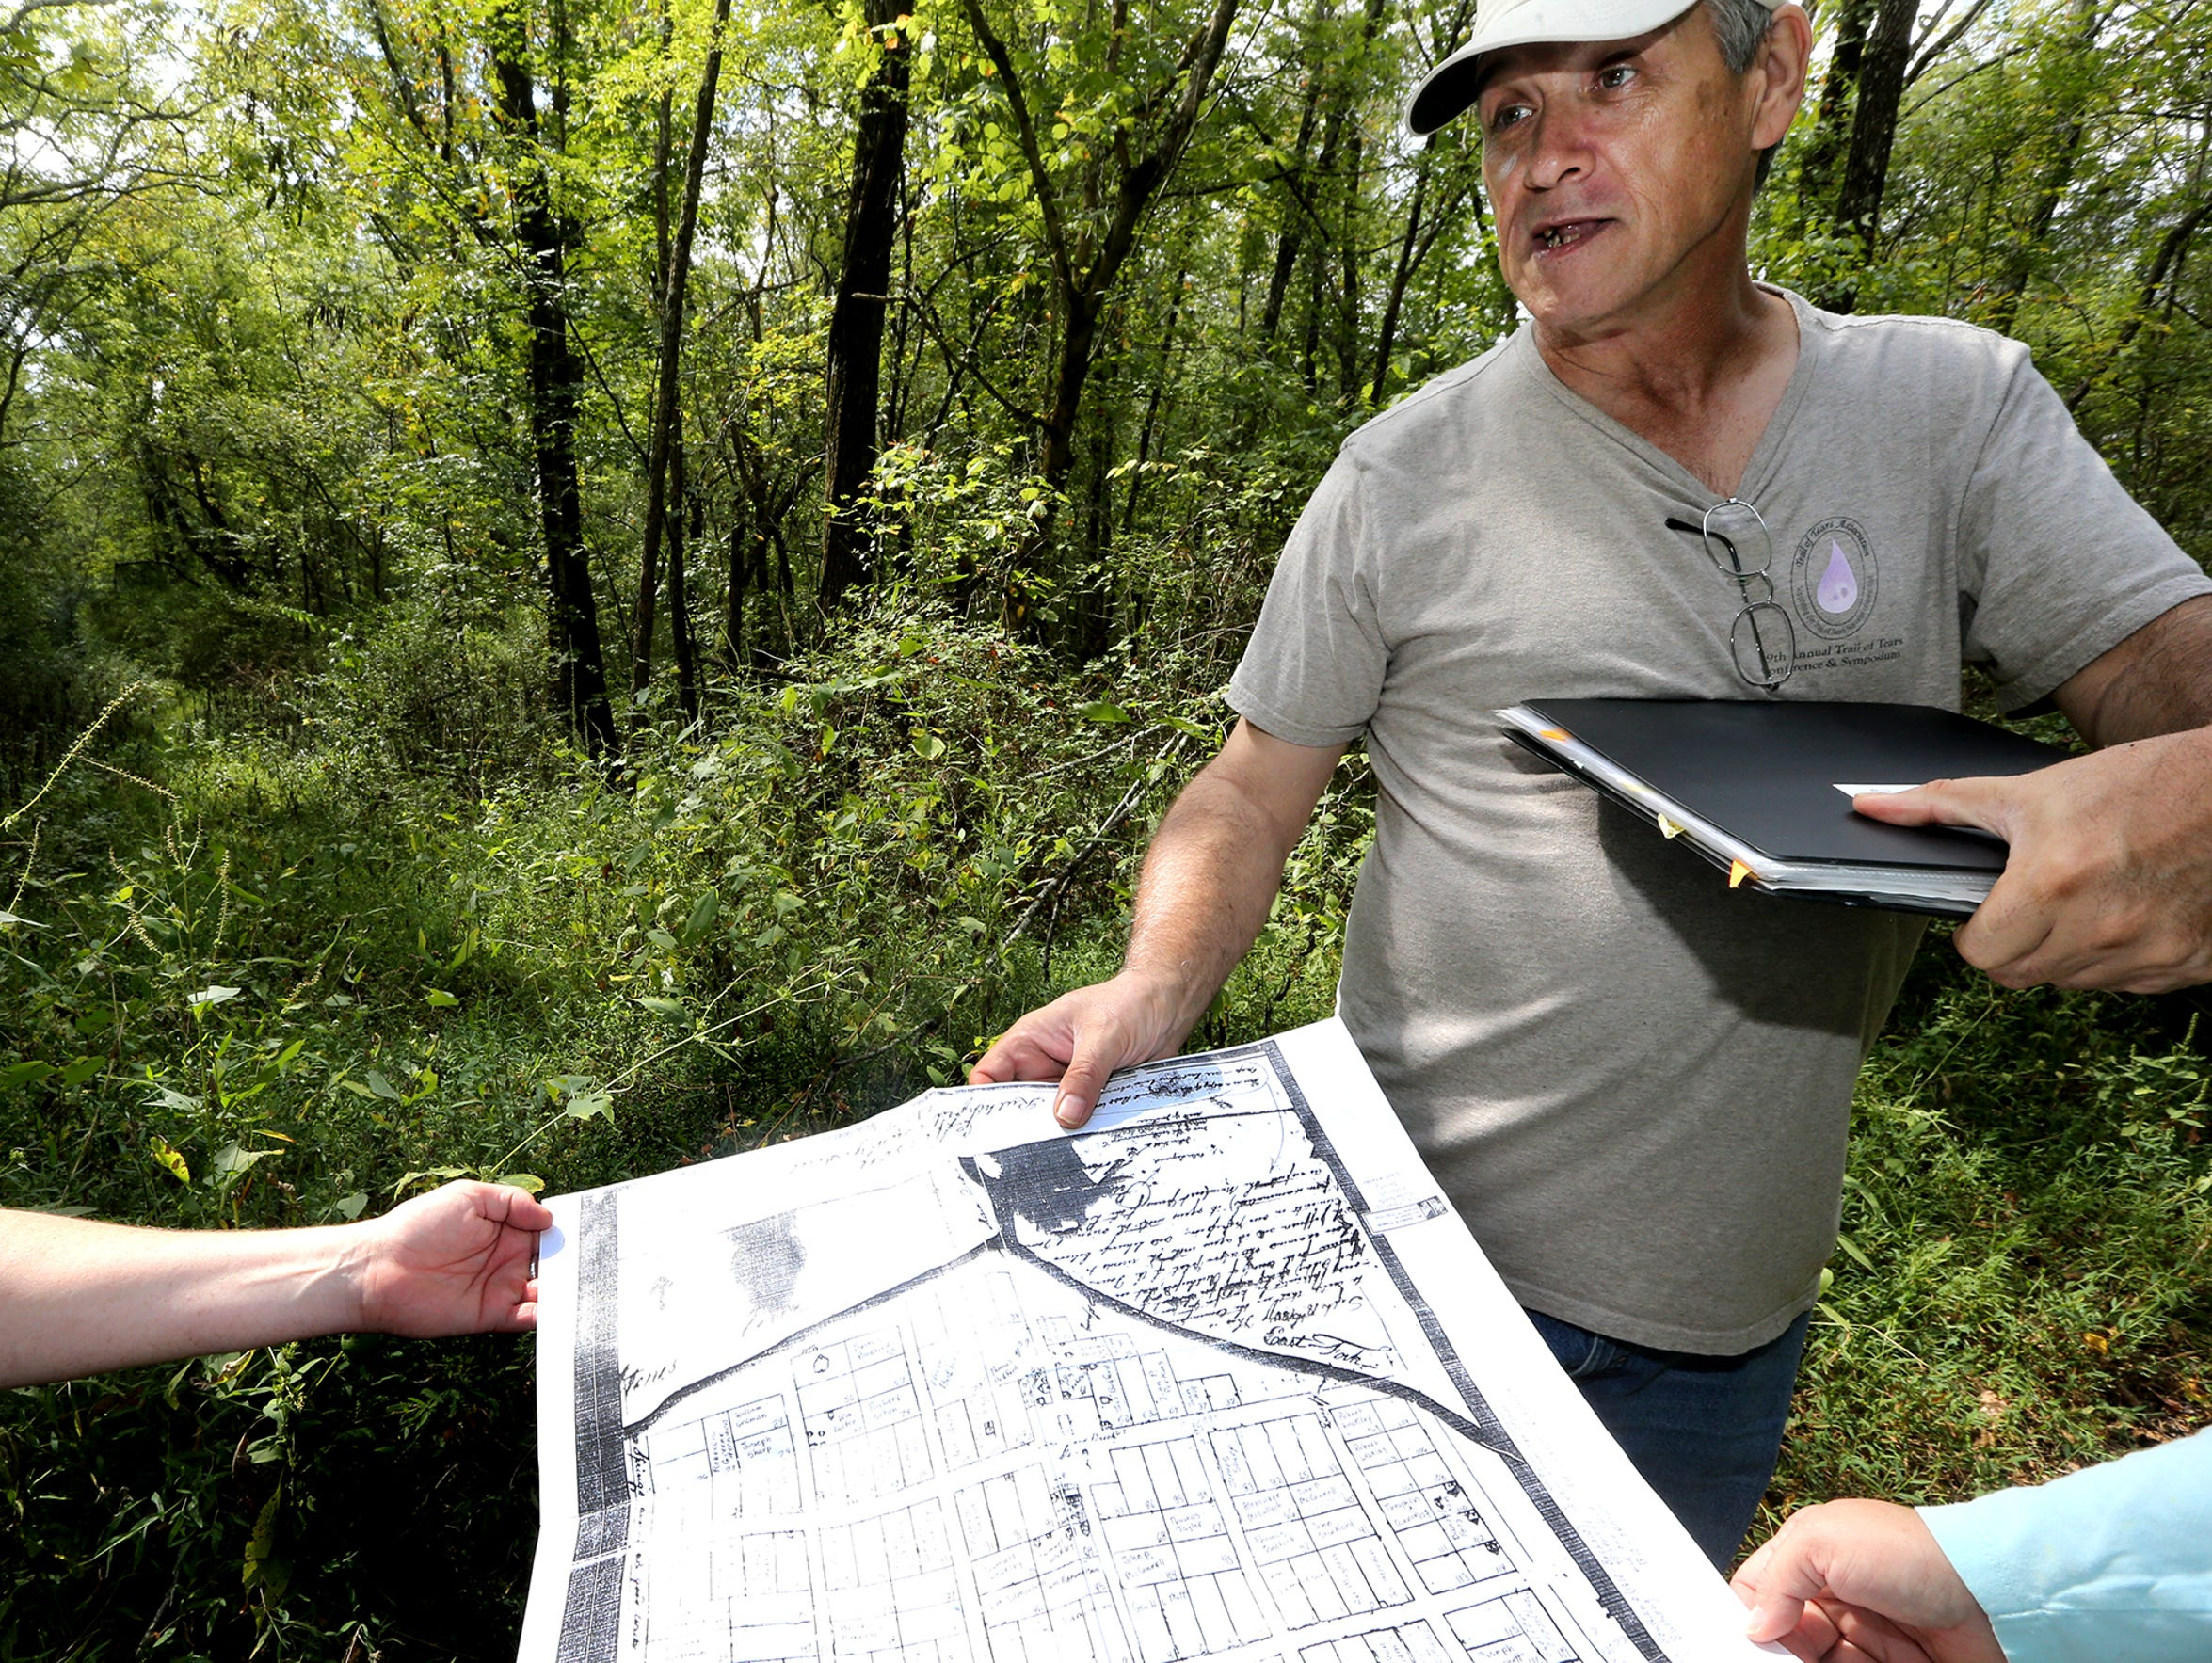 Pat Cummins shows an old map of Jefferson as he stands